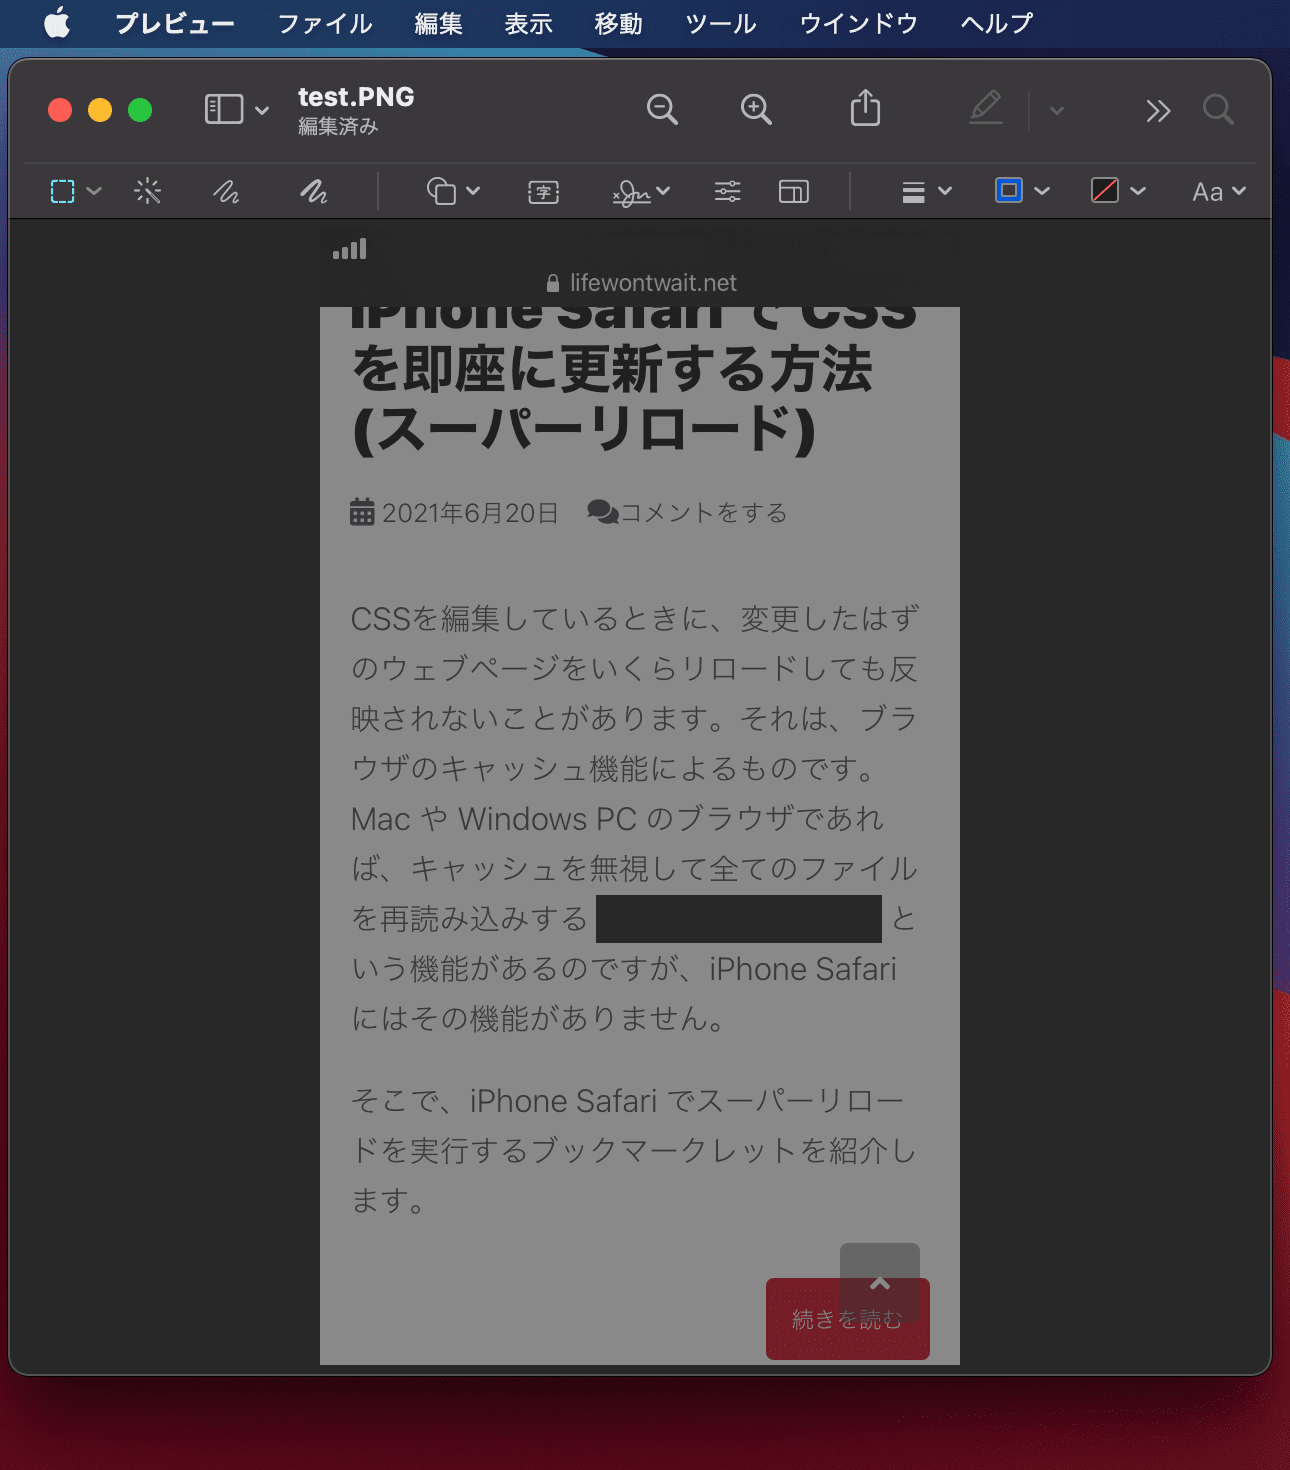 highlight-part-of-an-image-in-the-mac-preview-app_06